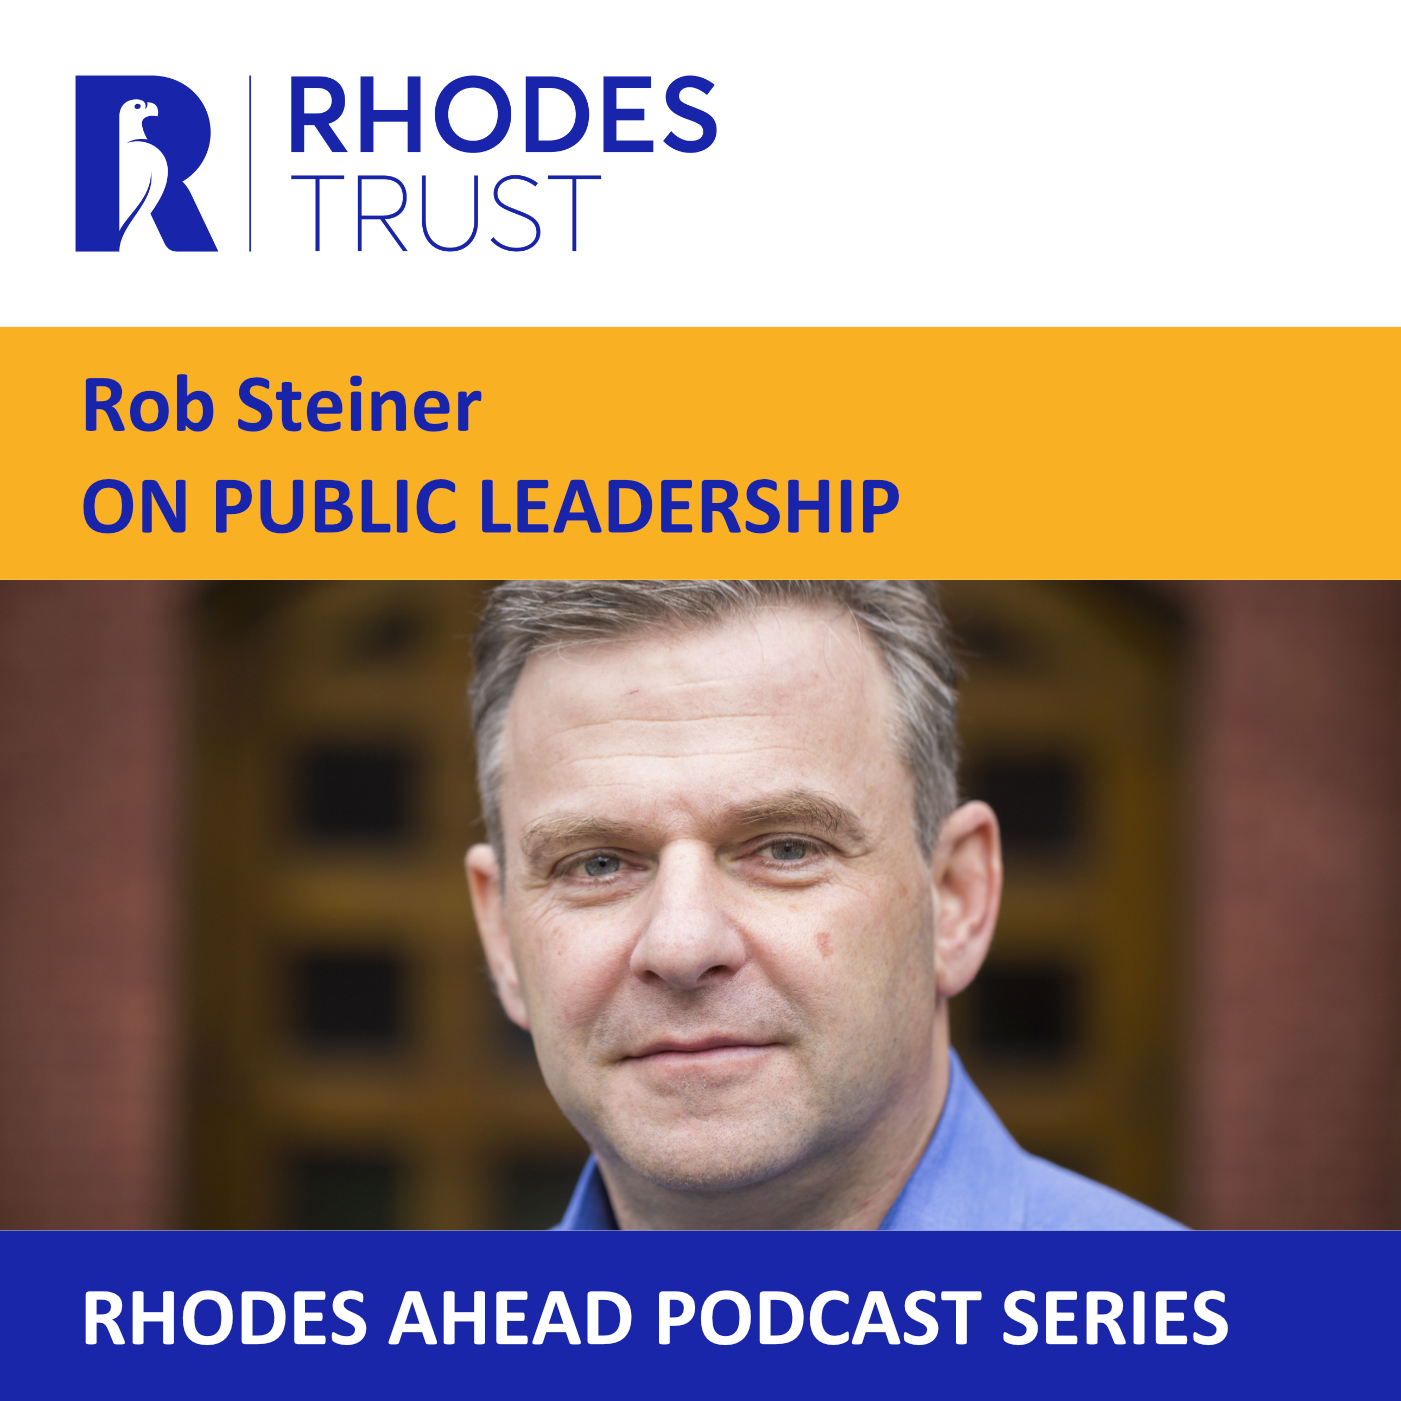 Rob Steiner on Public Leadership